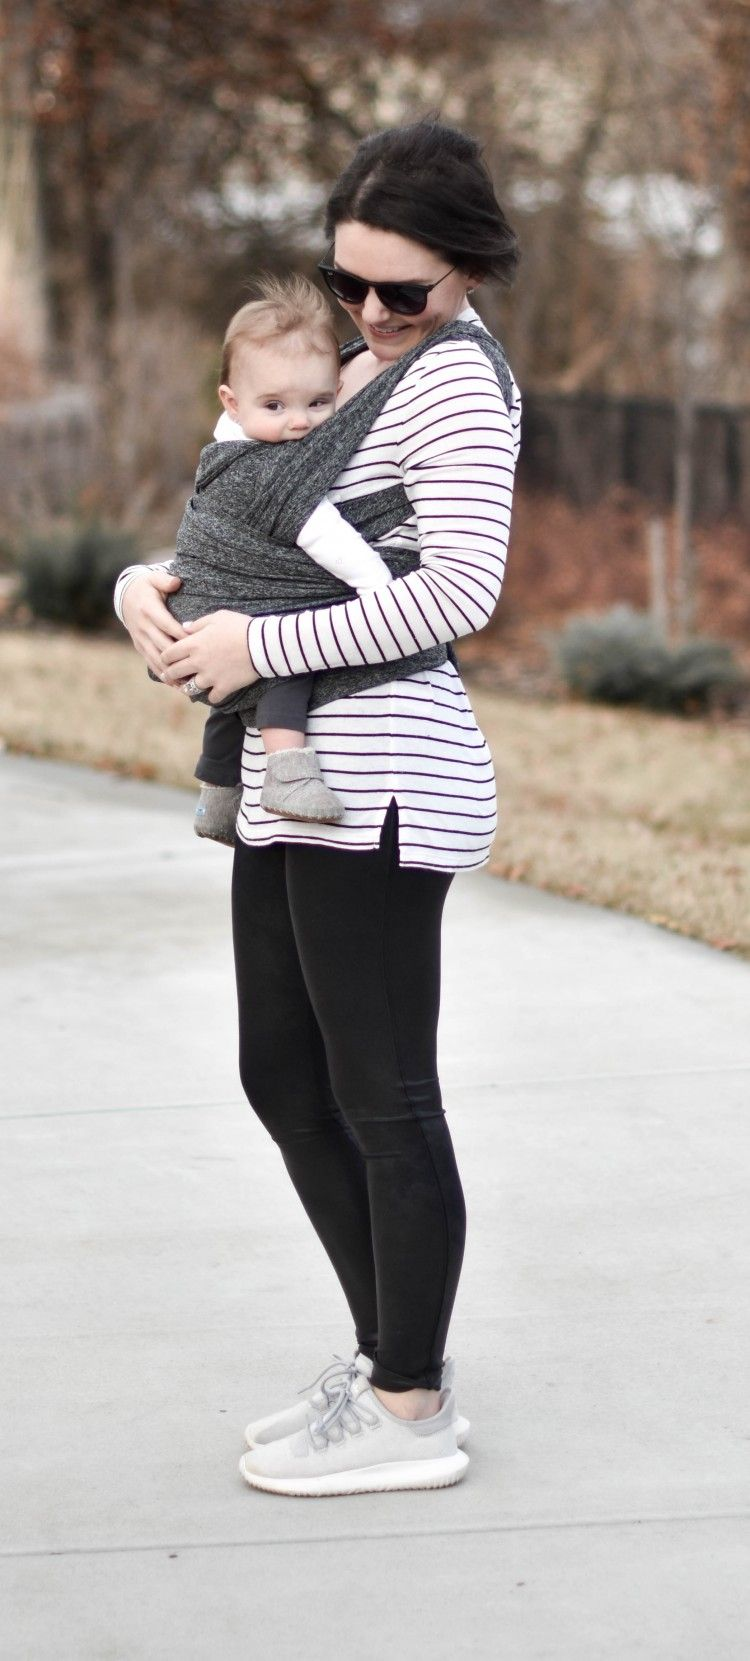 4c30cf7e708 must have postpartum outfit - spanx